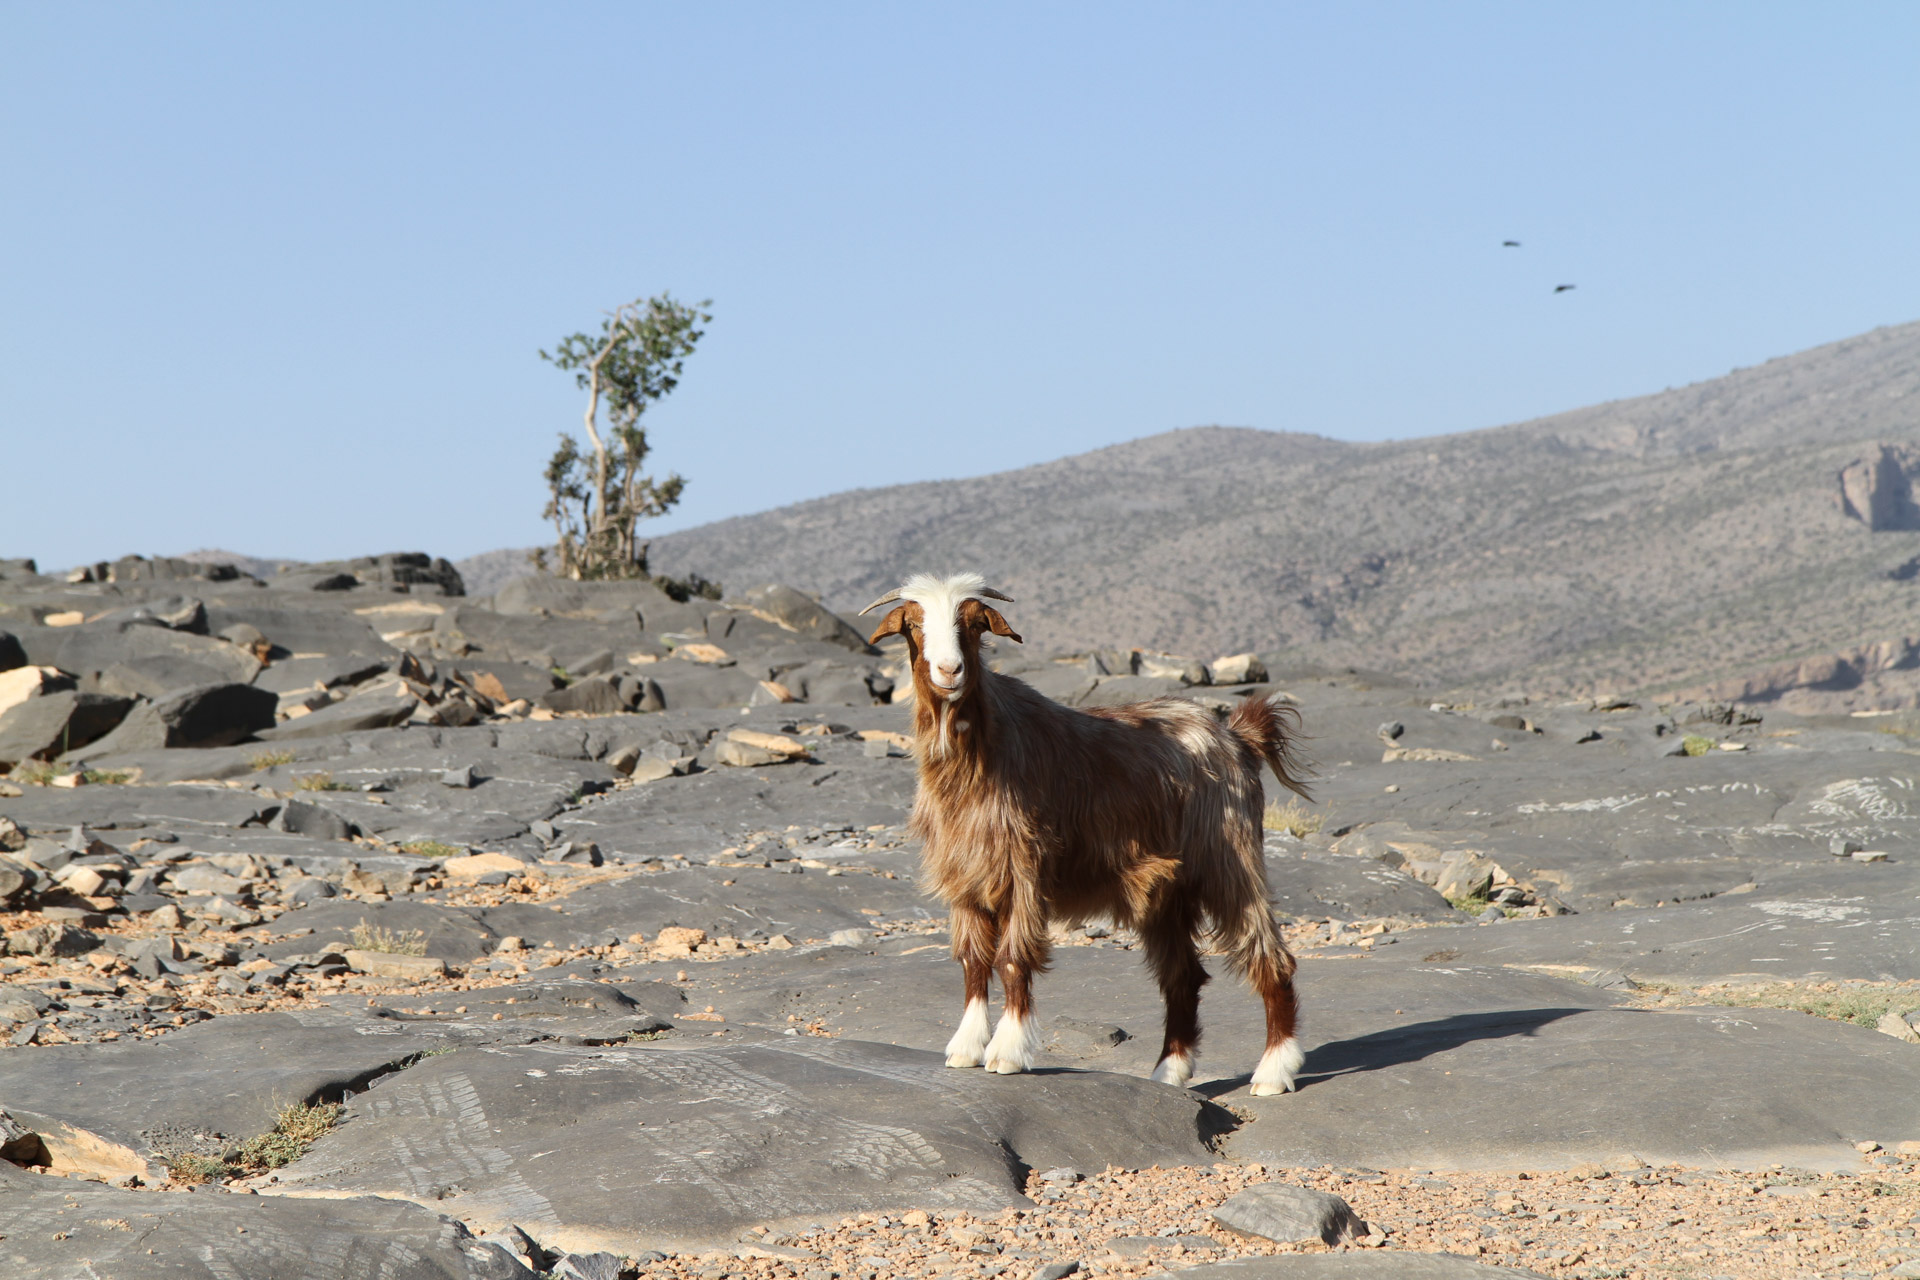 A goat that was really interested at what we were doing on her ground.